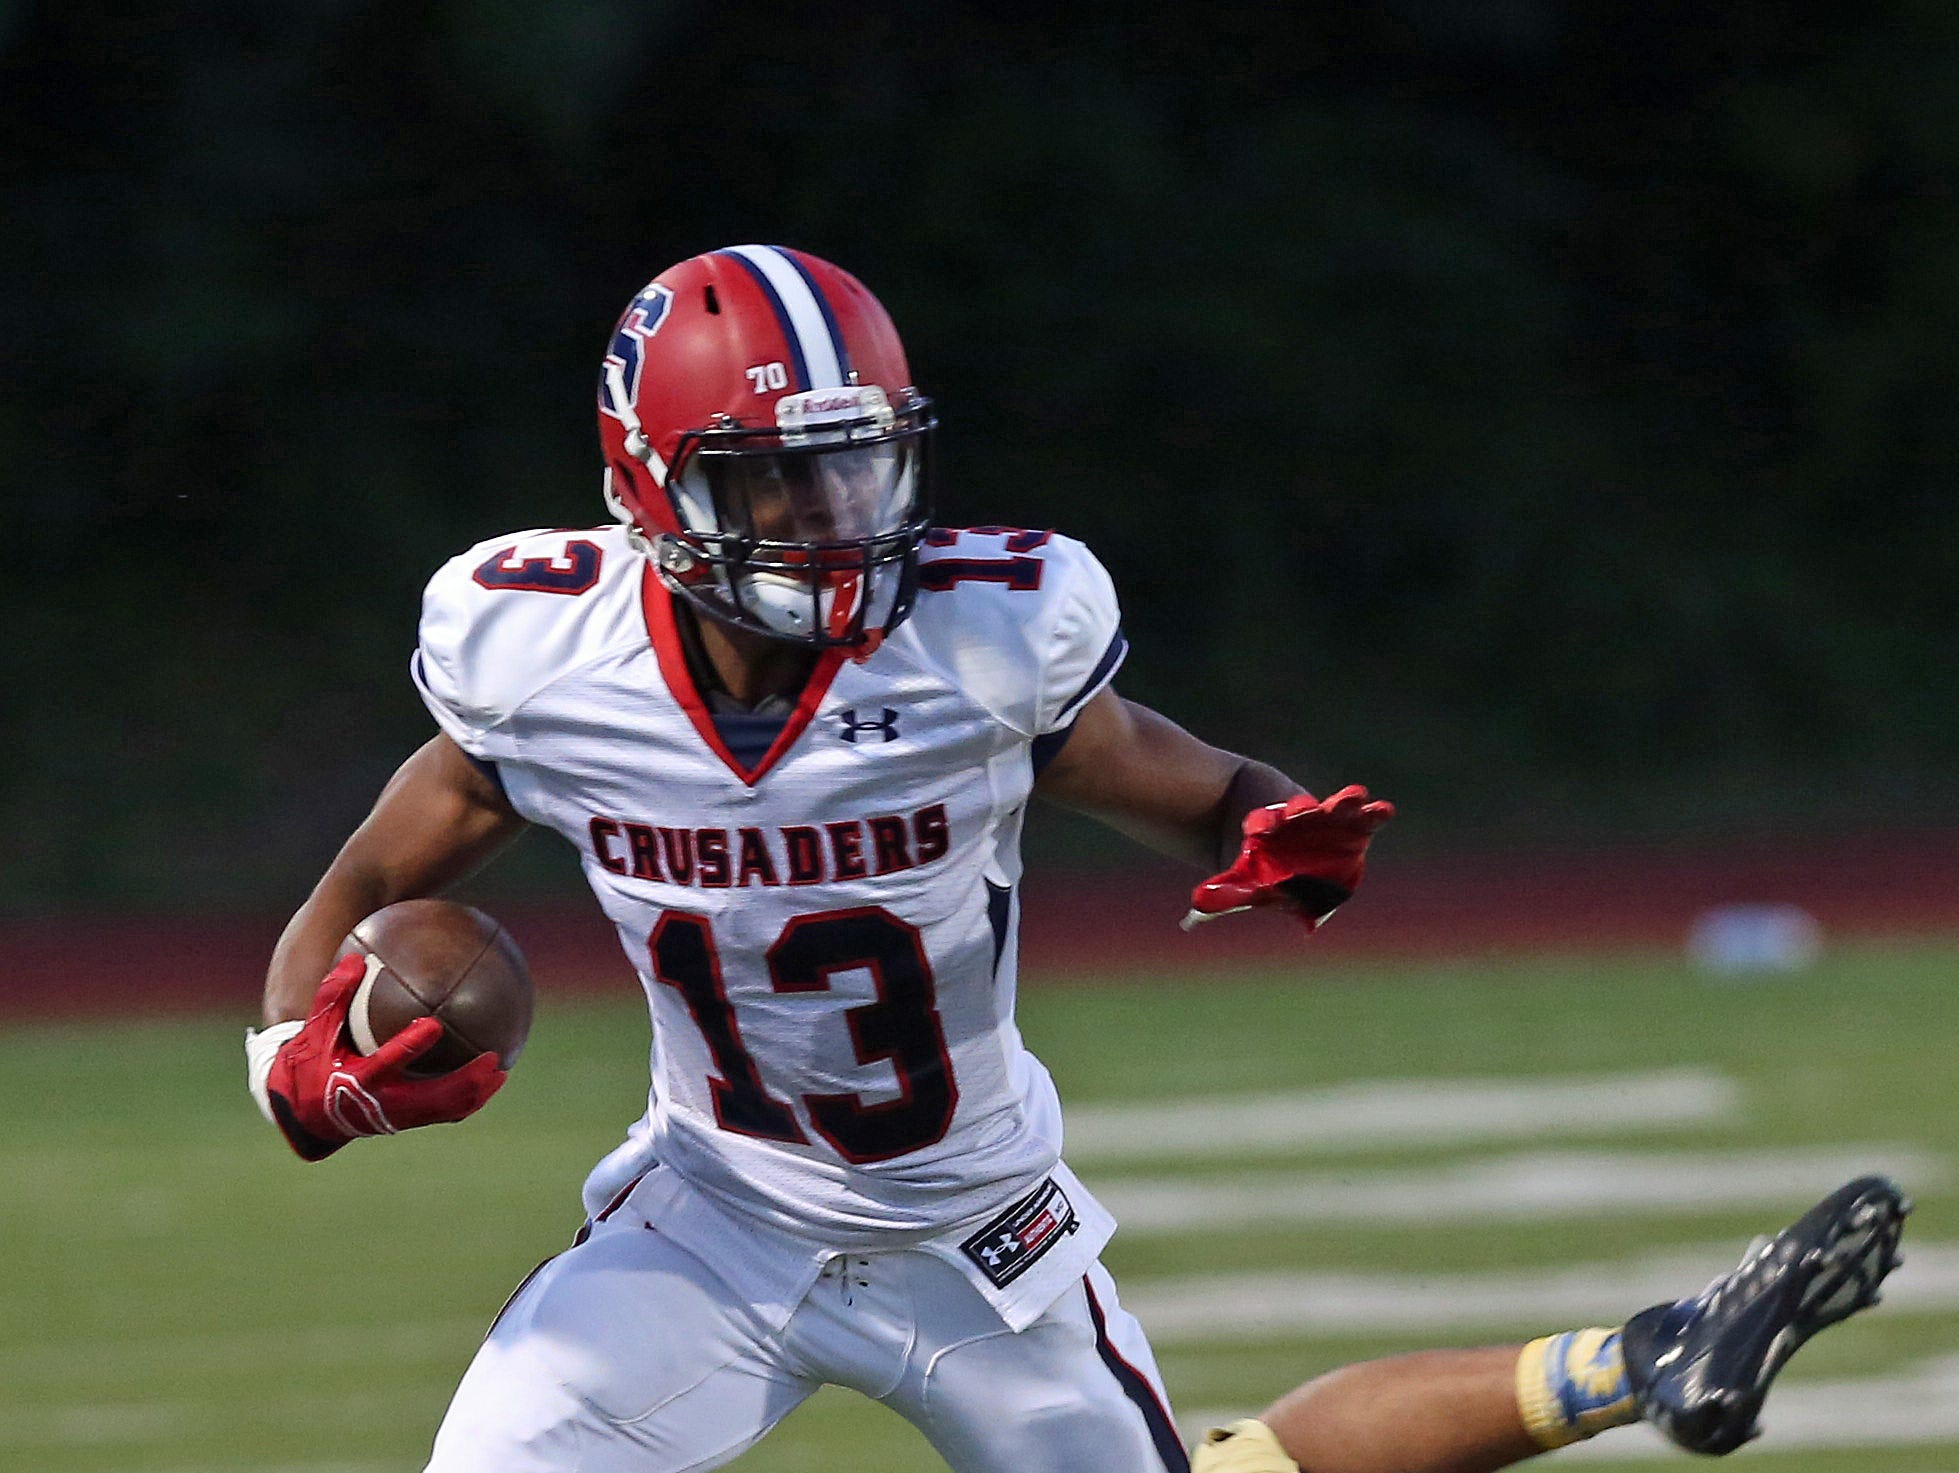 Stepinac's DeVante Reid (13) looks for some running room in the Newburgh defense during football game at Newburgh Free Academy Sept. 11, 2015